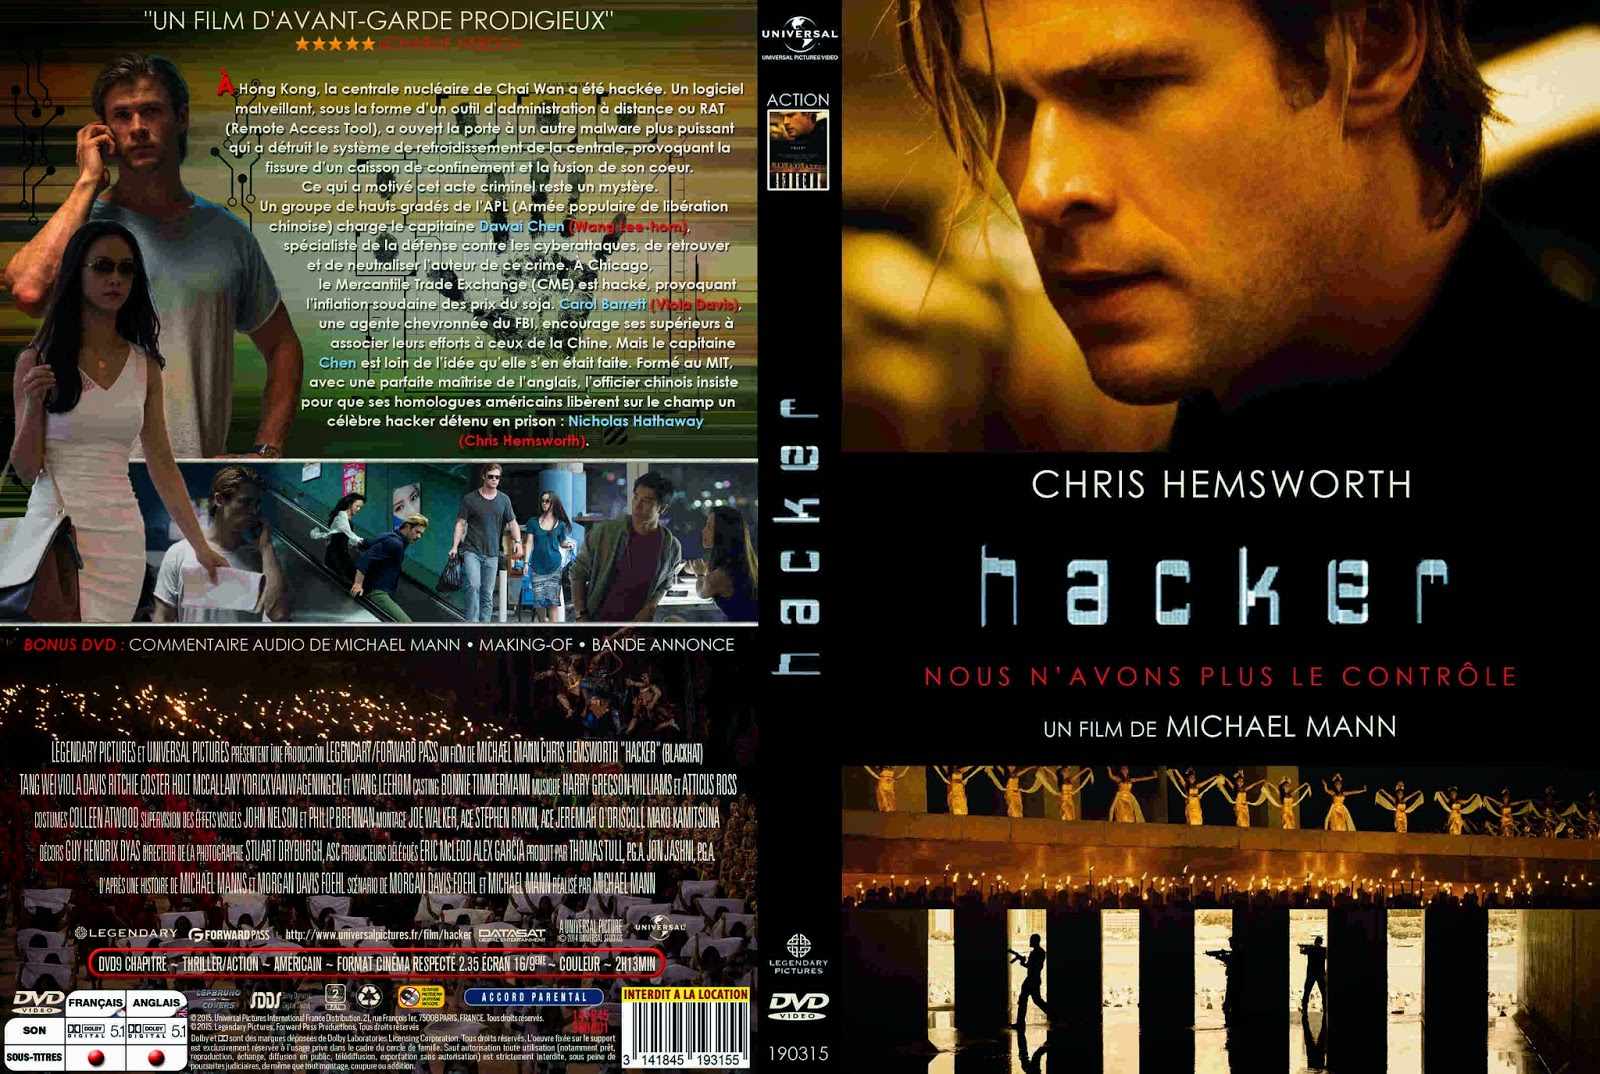 Download Hacker DVD-R Hacker 2B 2015  2BFRENCH 2B  2BCover 2BDVD 2BMovie